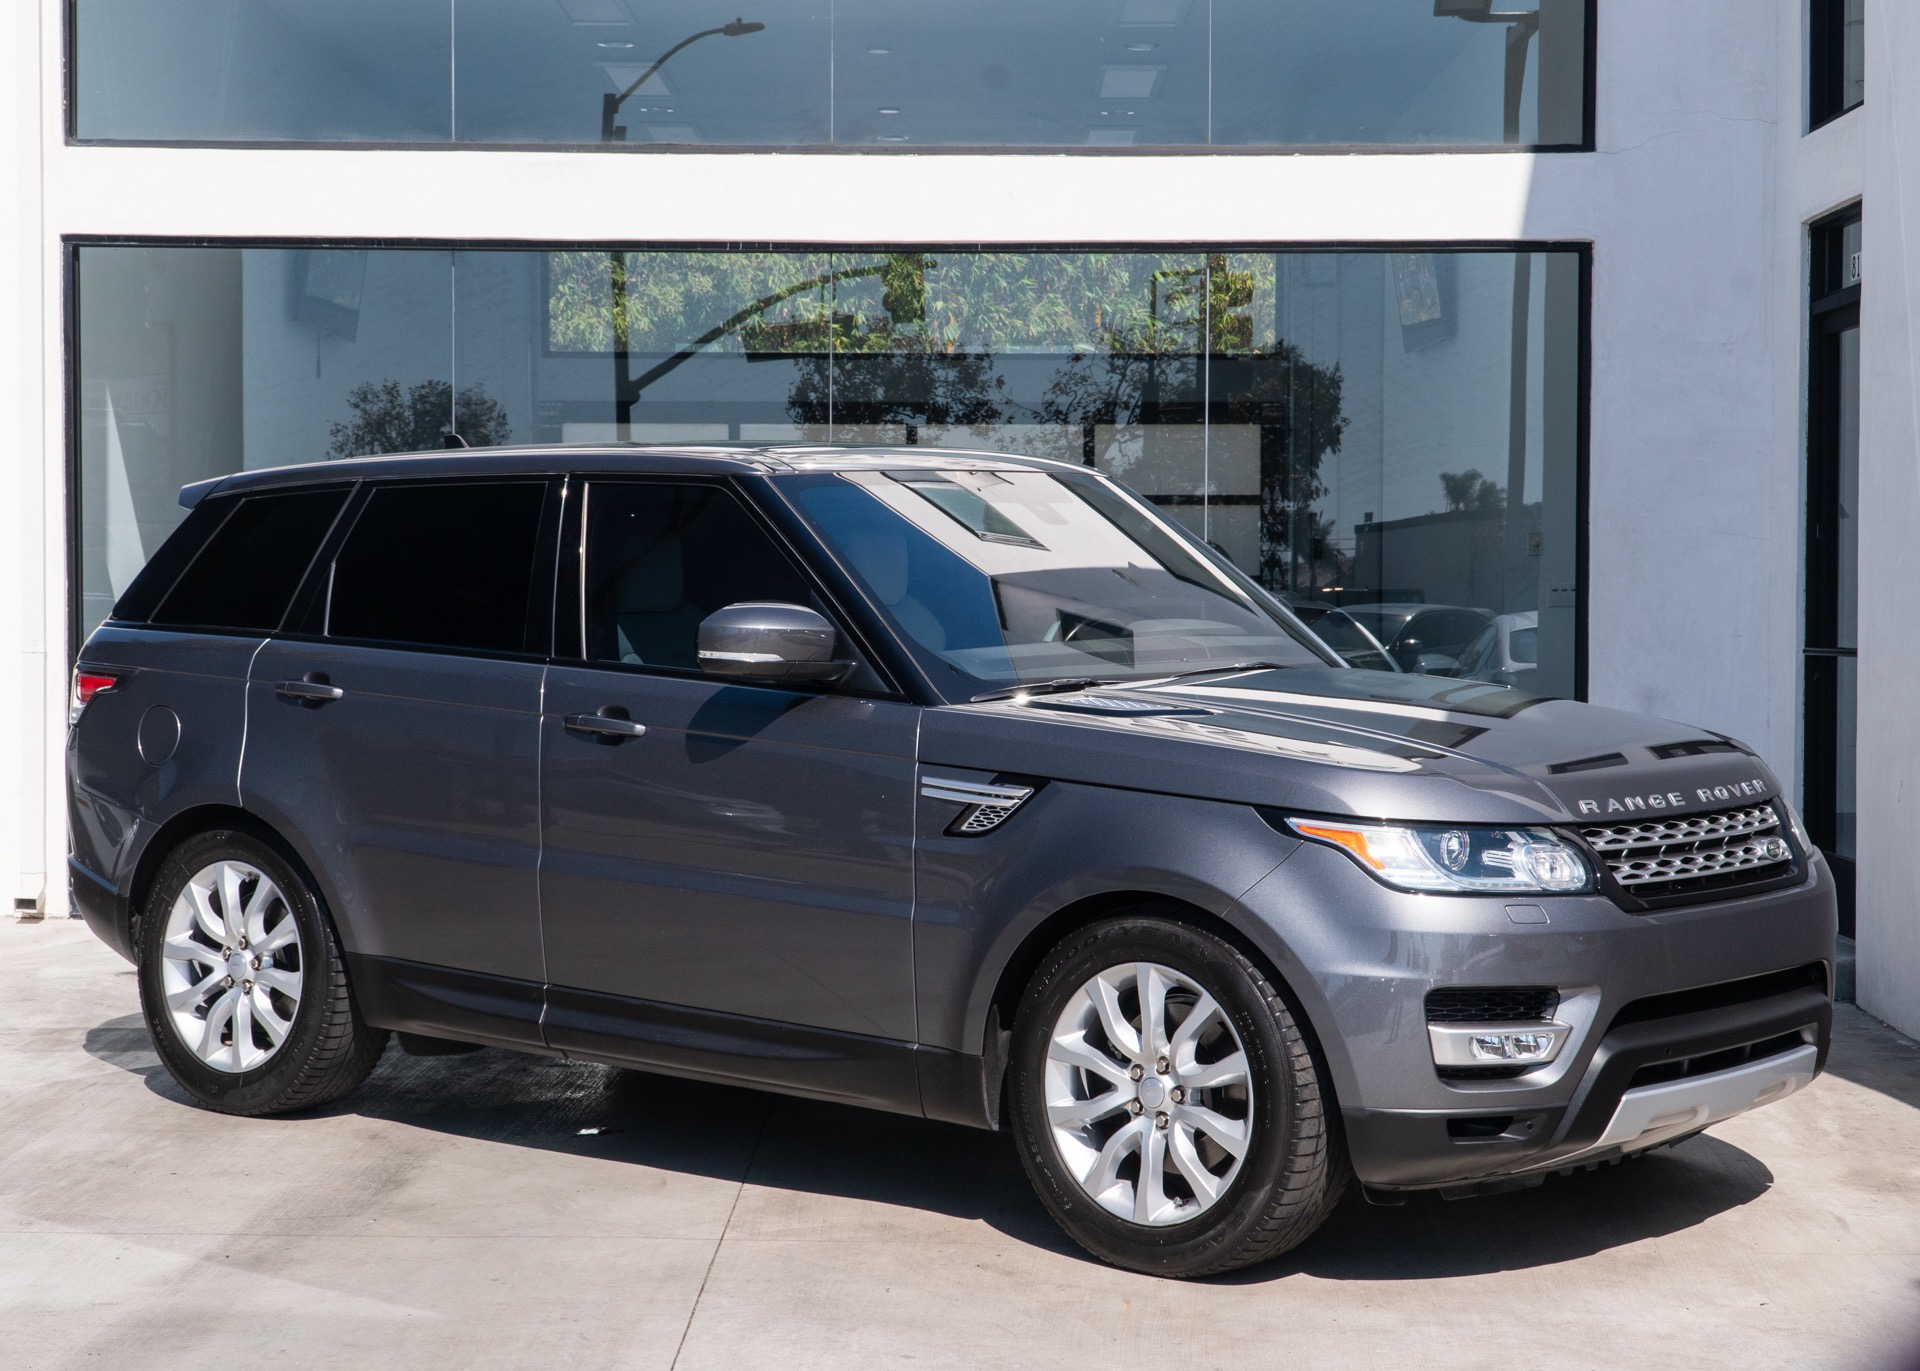 Used-2016-Land-Rover-Range-Rover-Sport-HSE-Td6